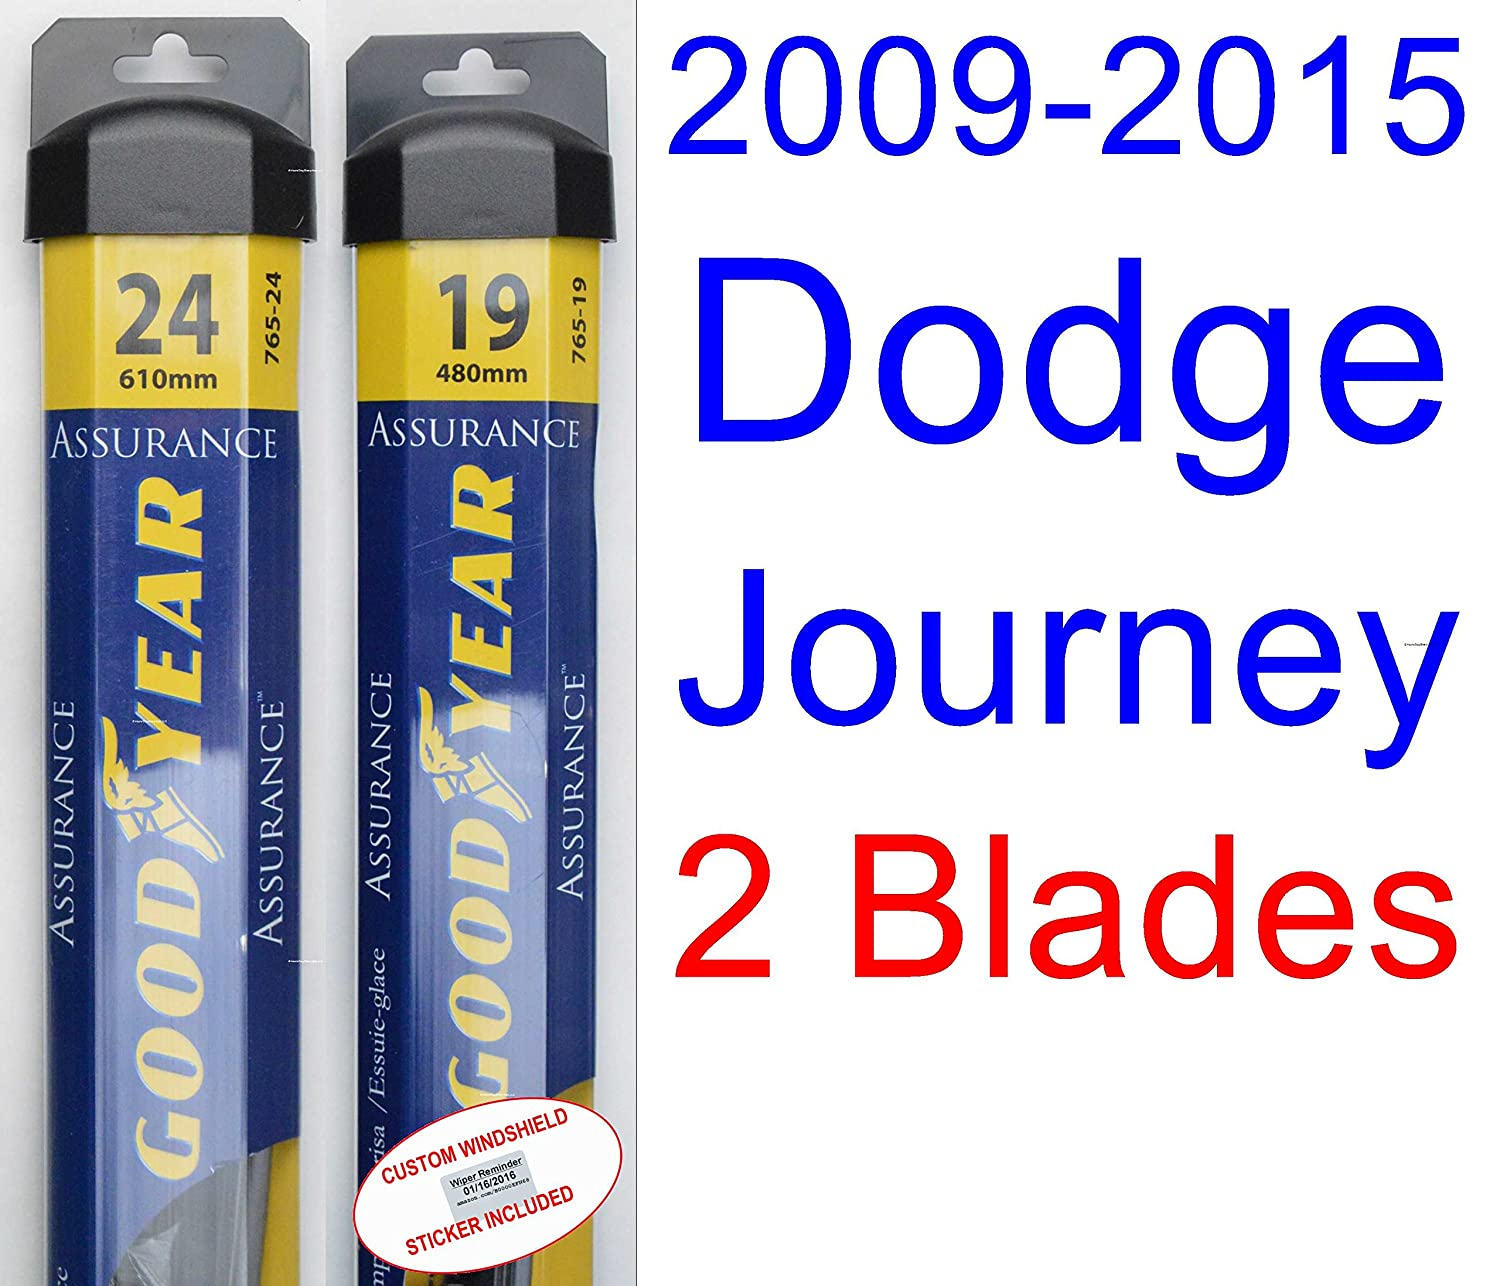 Amazon.com: 2009-2015 Dodge Journey Replacement Wiper Blade Set/Kit (Set of 3 Blades) (Goodyear Wiper Blades-Assurance) (2010,2011,2012,2013,2014): ...